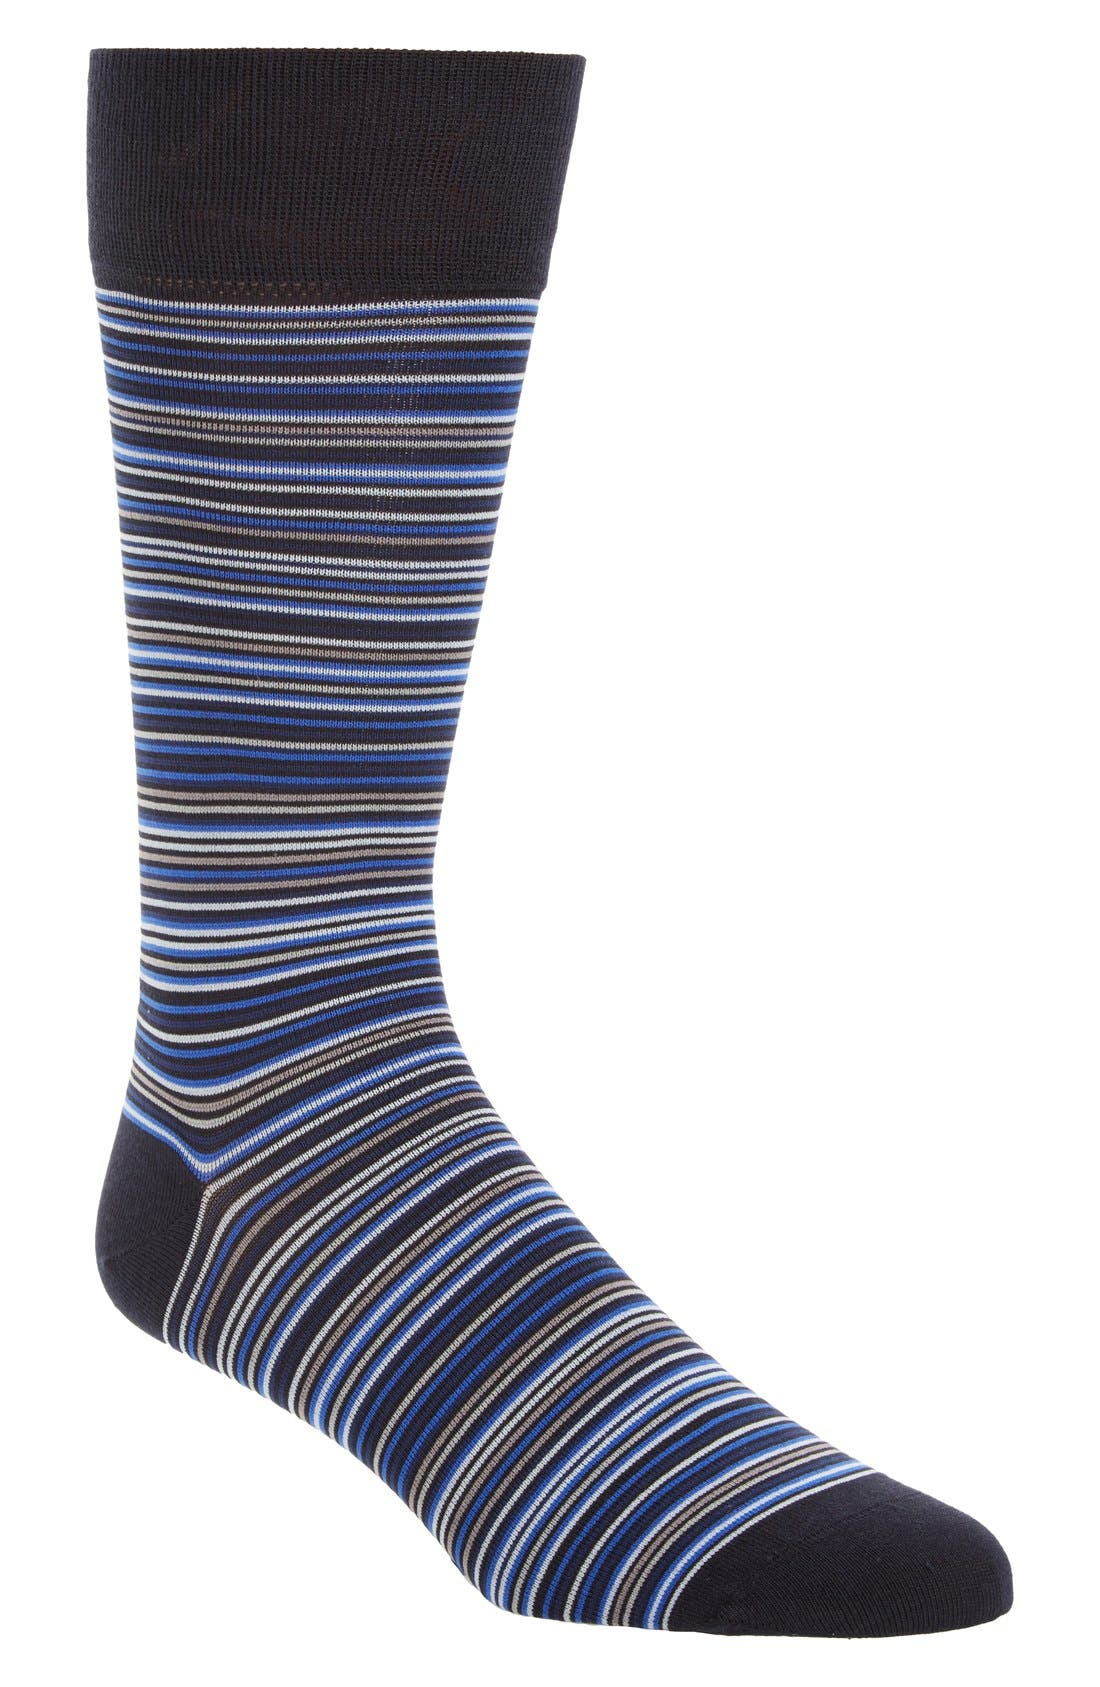 Multistripe Crew Socks,                         Main,                         color, Navy